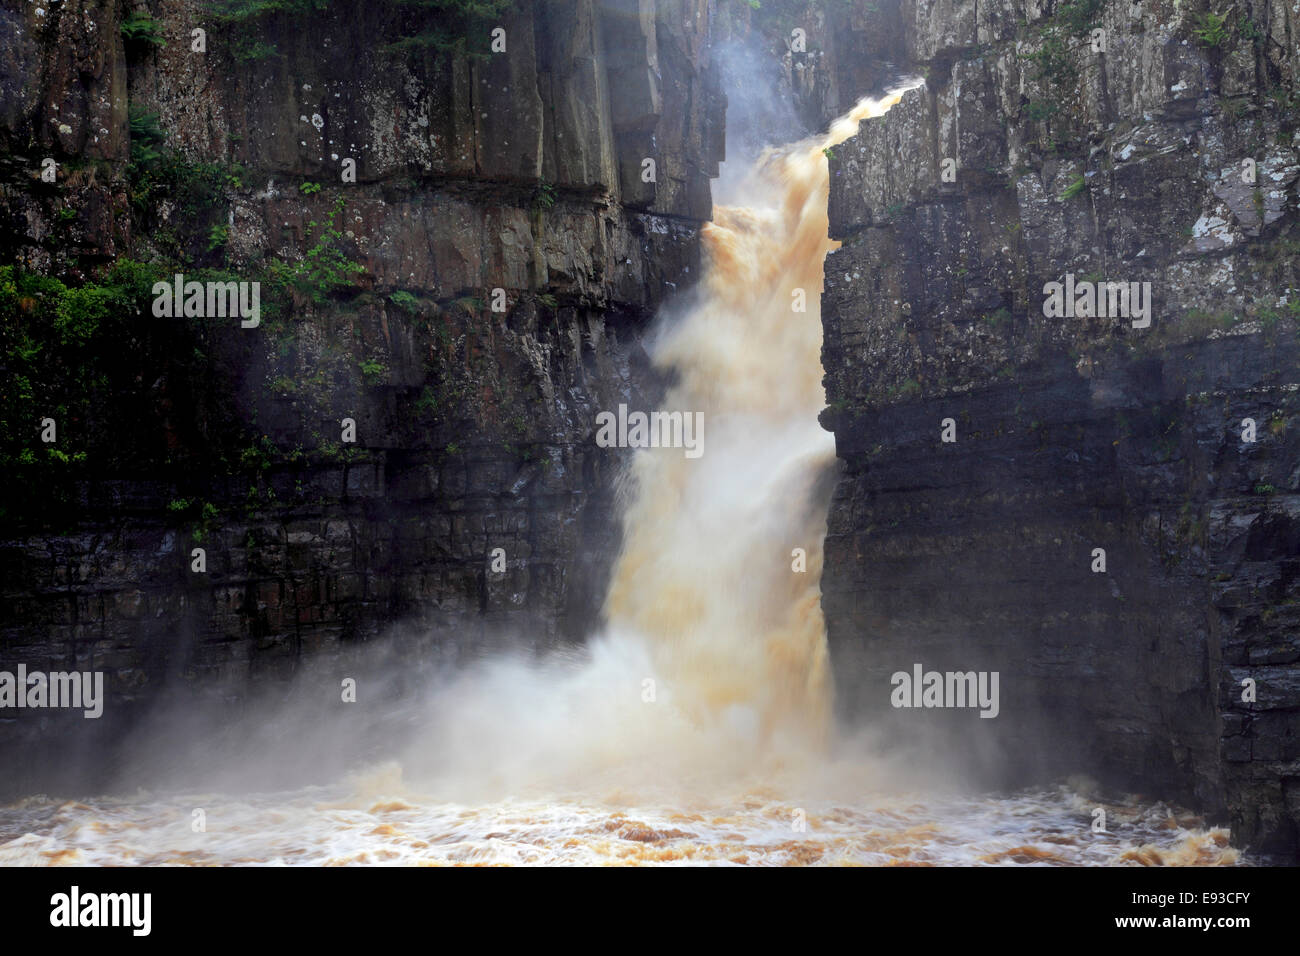 3228. High Force Waterfall, River Tees, Teesdale, Durham, UK - Stock Image